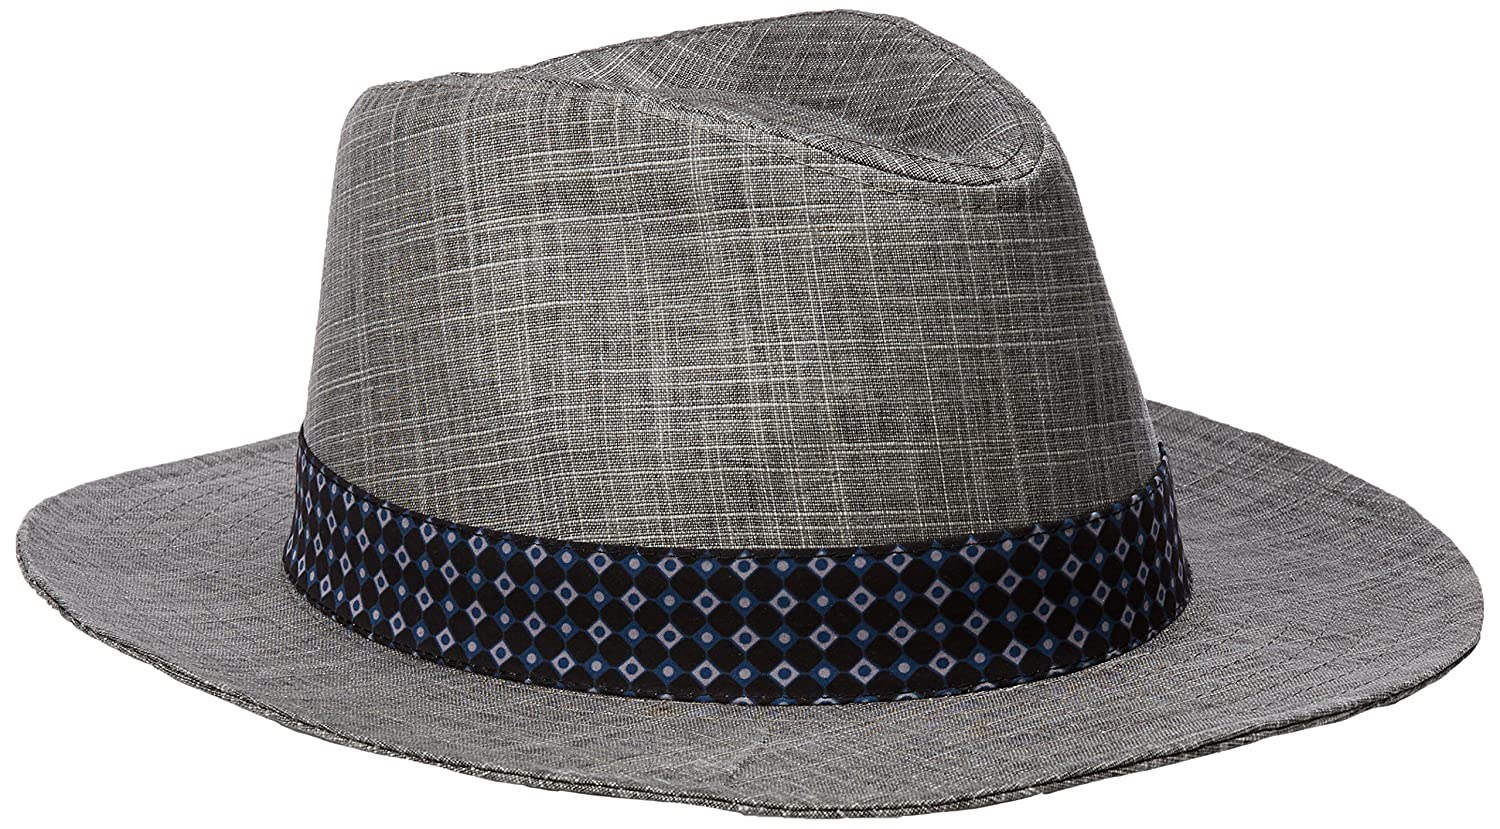 Ben Sherman Men's Textured Linen Trilby Hat Ben Sherman Headwear BS4981